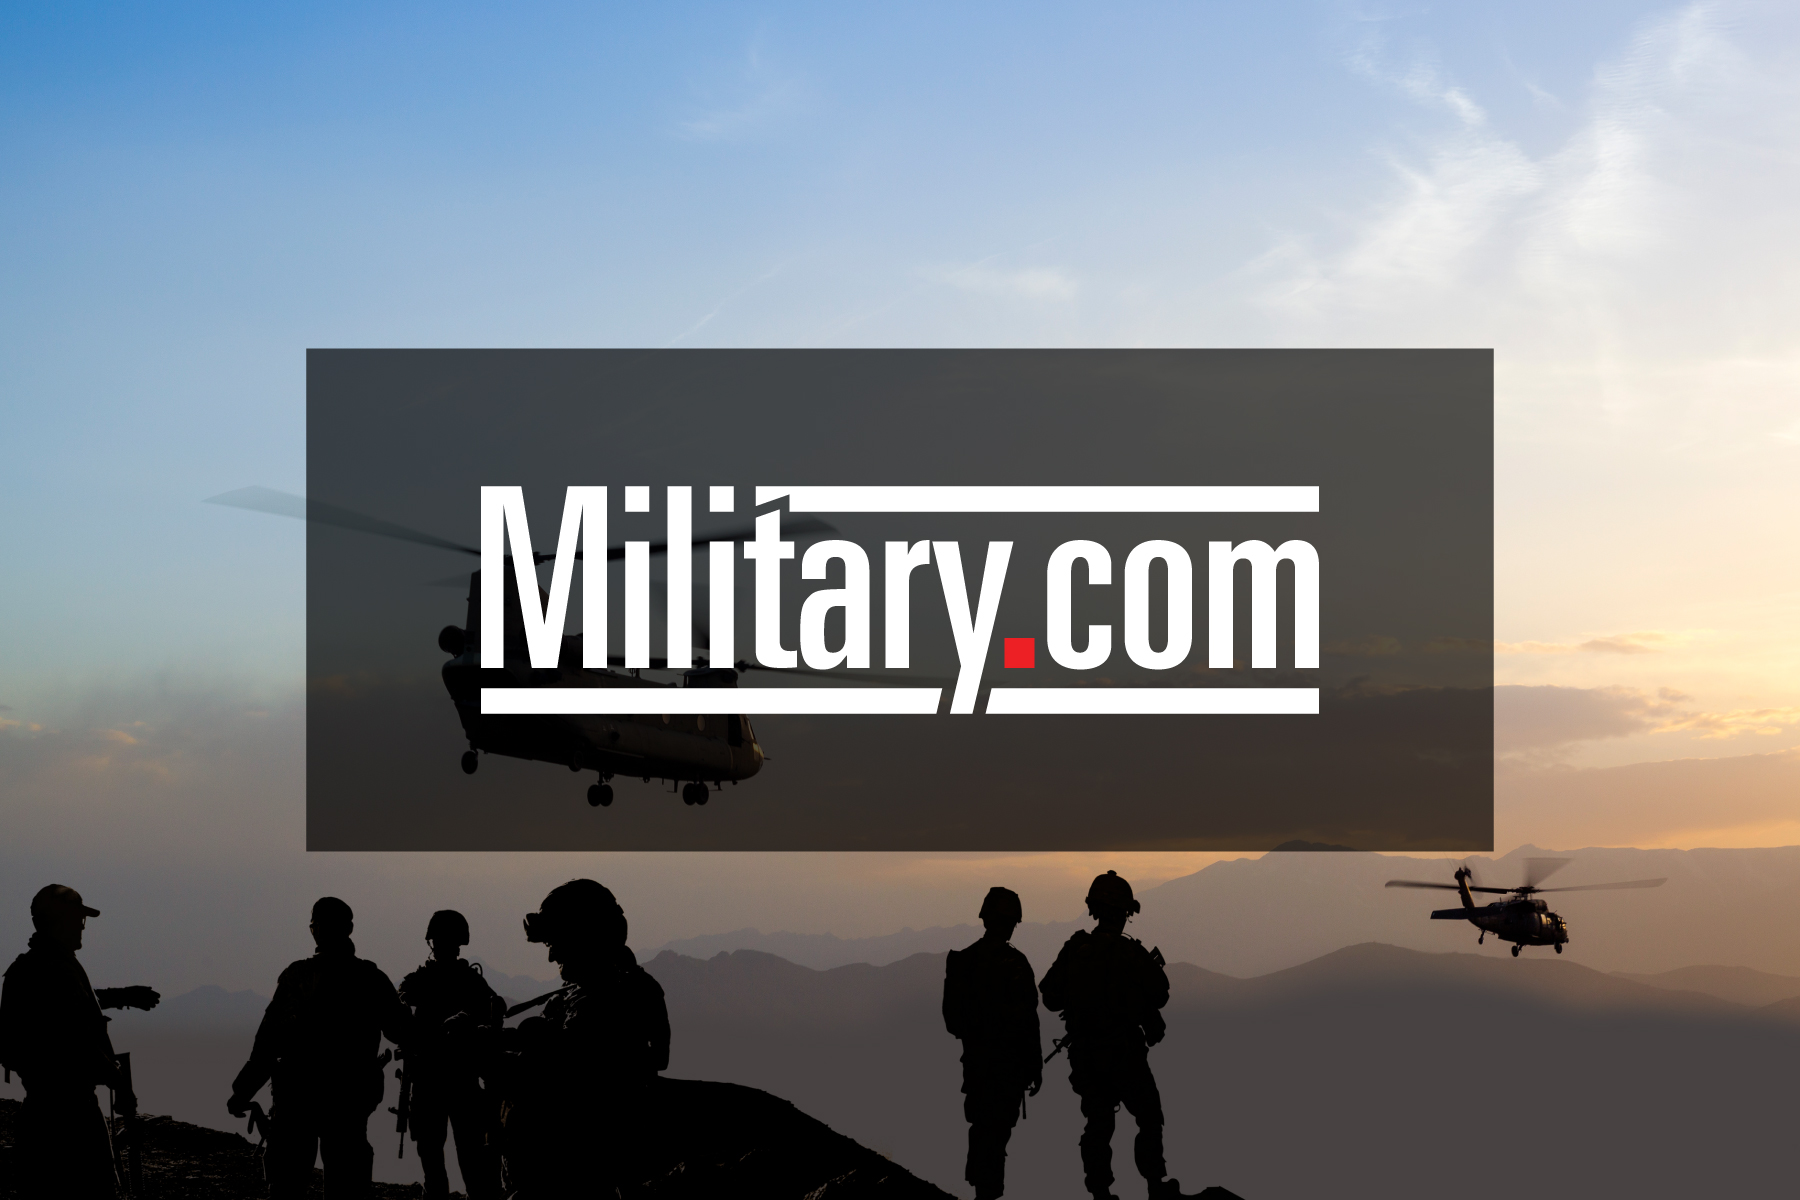 Staff Sgt. Mario Tenario, Company A, 1st Battalion, 187th Infantry Regiment, 3rd Brigade Combat Team, 101st Airborne Division trains Afghan National Army soldiers how to inspect equipment.